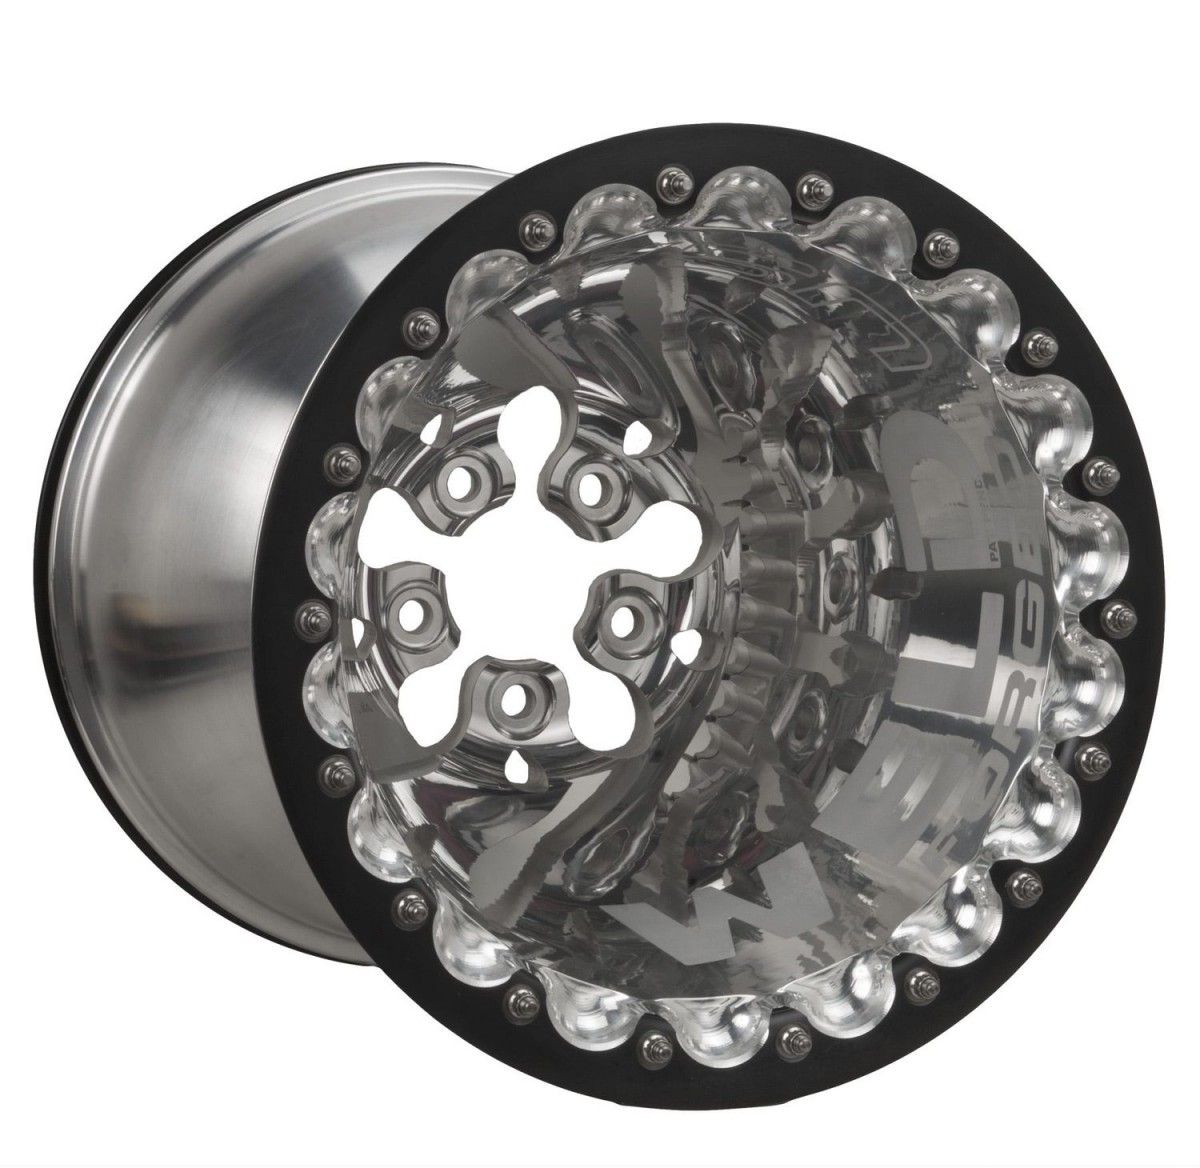 Weld Racing Delta 1 Forged Drive Wheels Are The Lightest Stiffest And Strongest 16